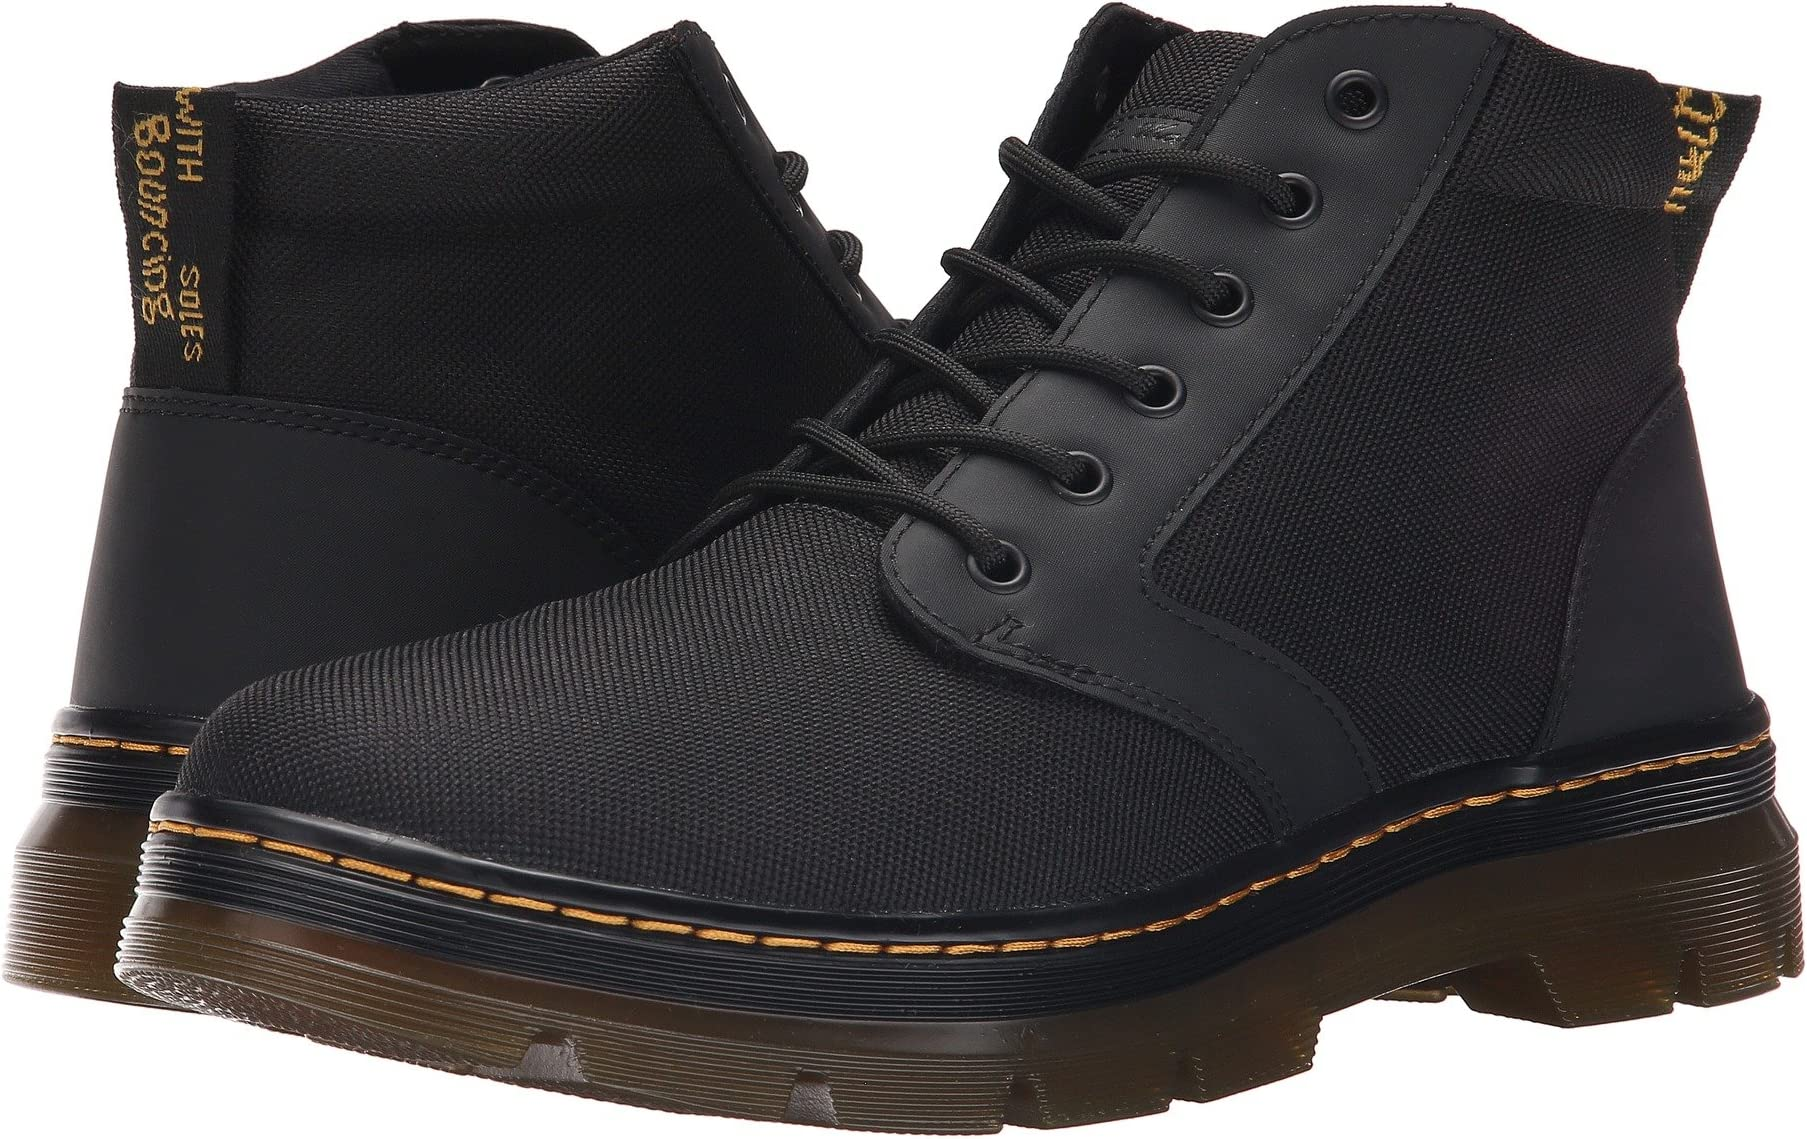 971c7e351 Dr. Martens Boots, Shoes, and More | Zappos.com